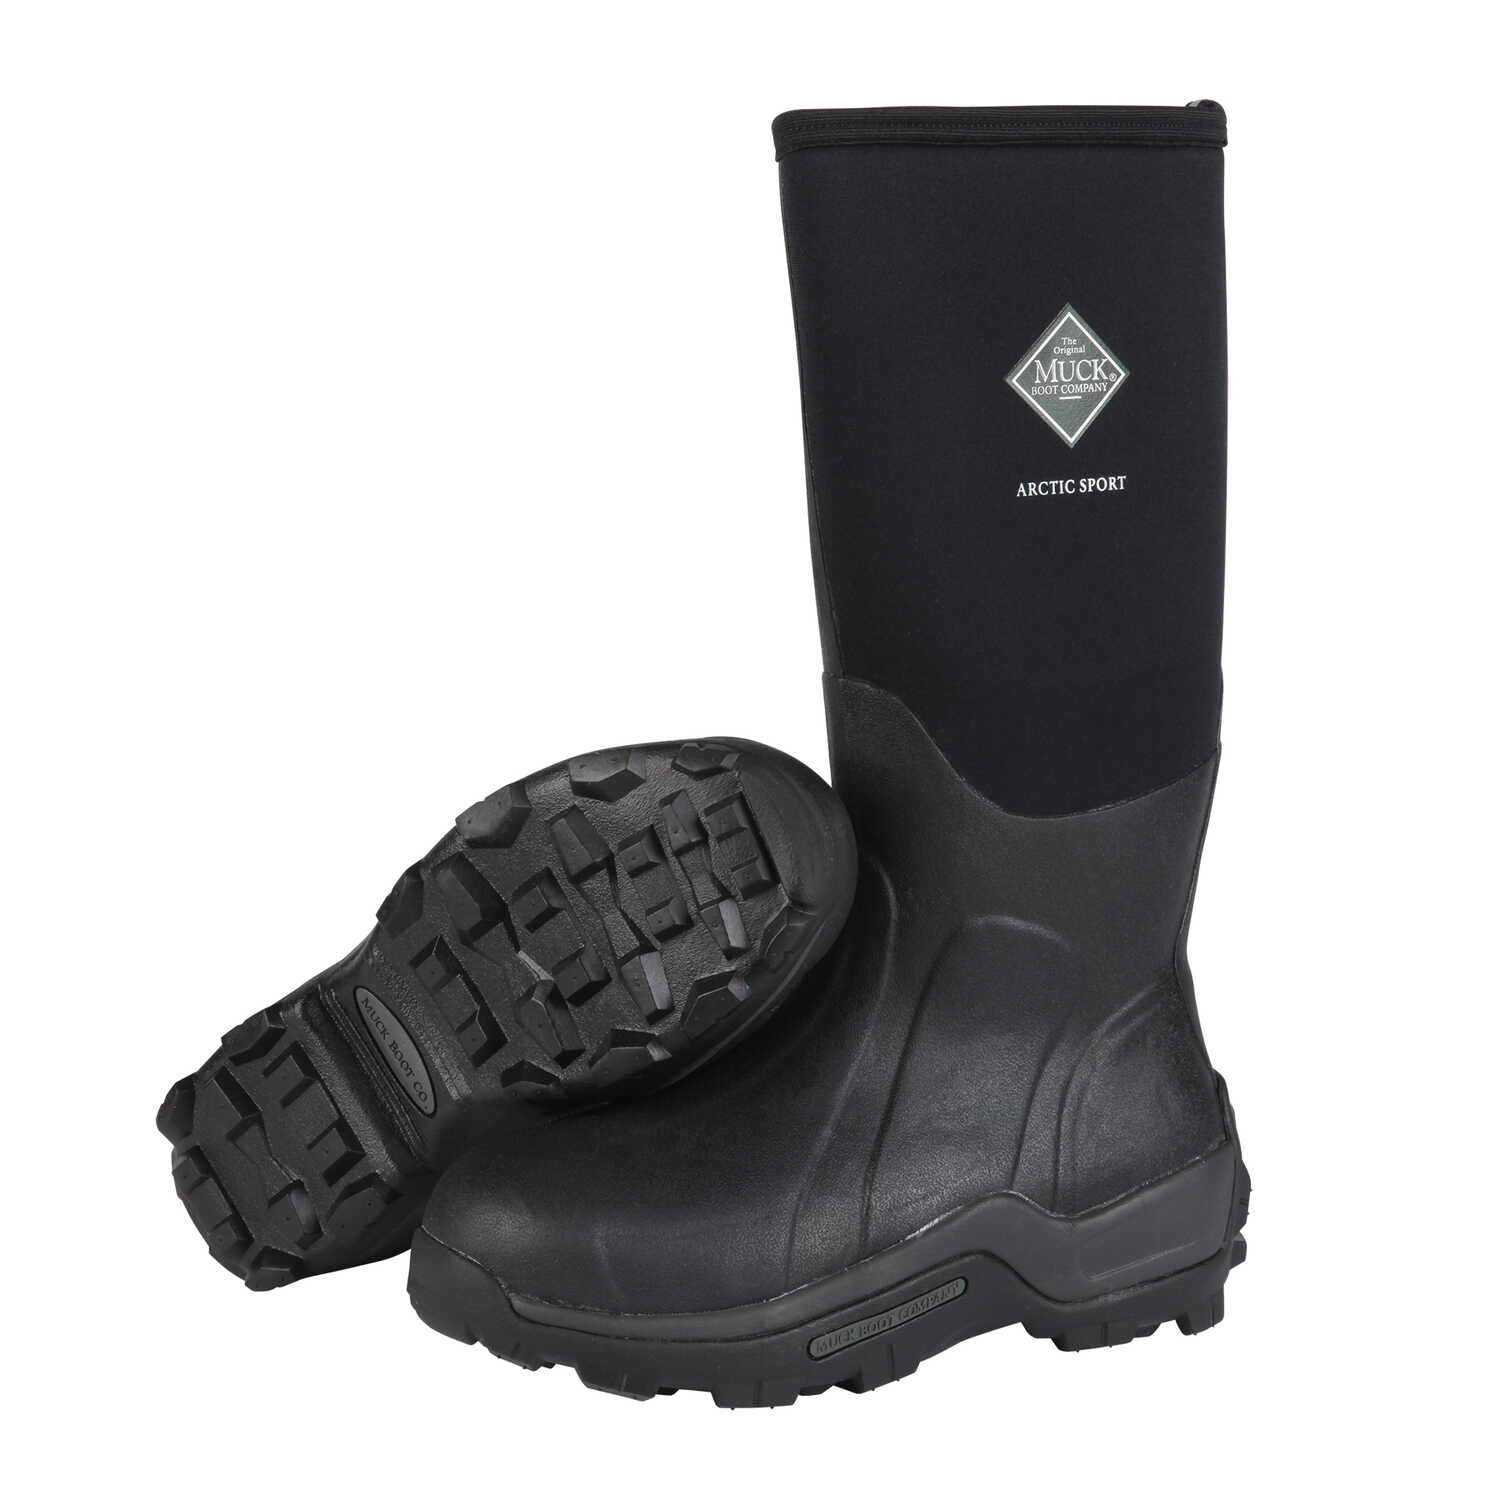 The Original Muck Boot Company  Arctic Sport  Men's  Boots  13 US  Black